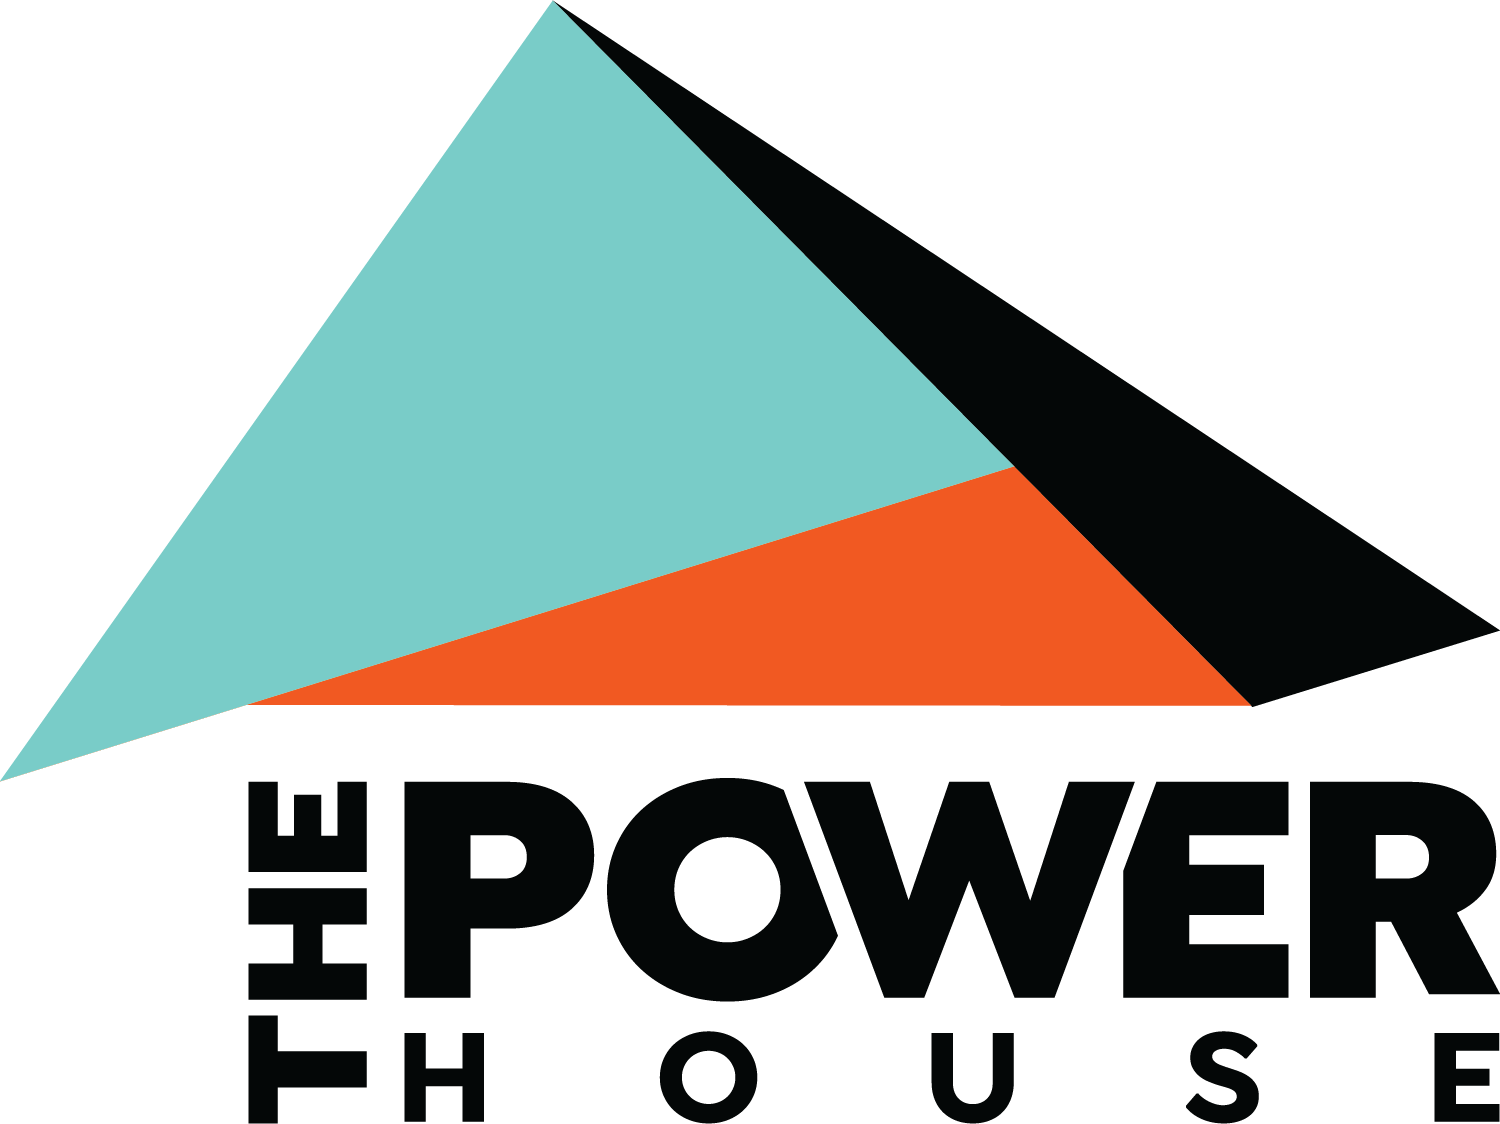 The Power House